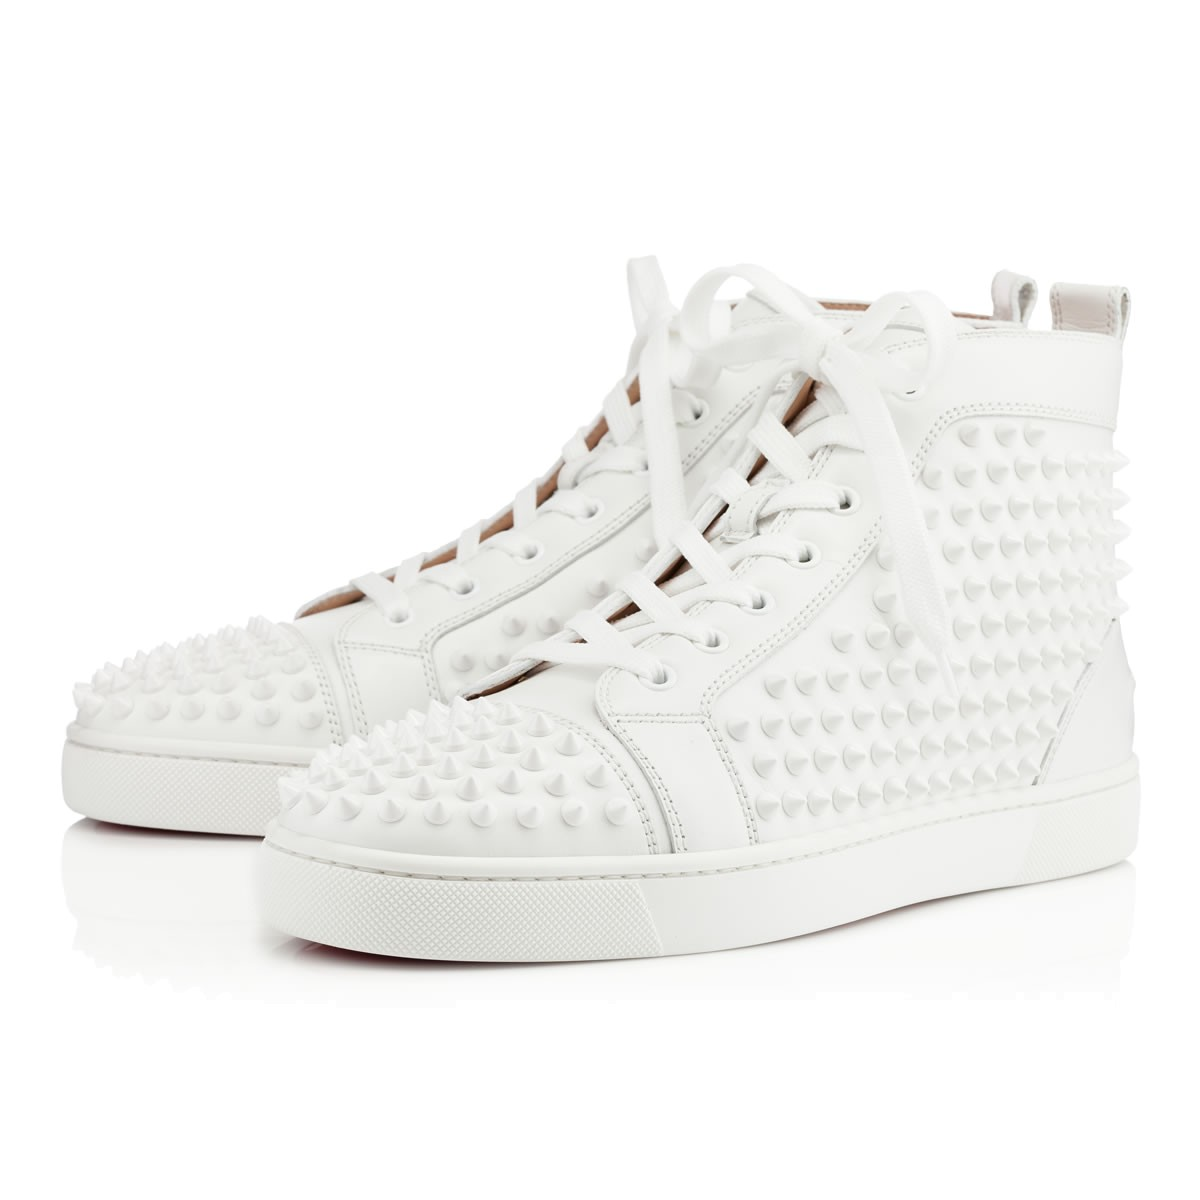 d446d4cea329 Christian Louboutin Louboutin Yang Louis Calf-Laminato Dino- Spikes Ray In  White